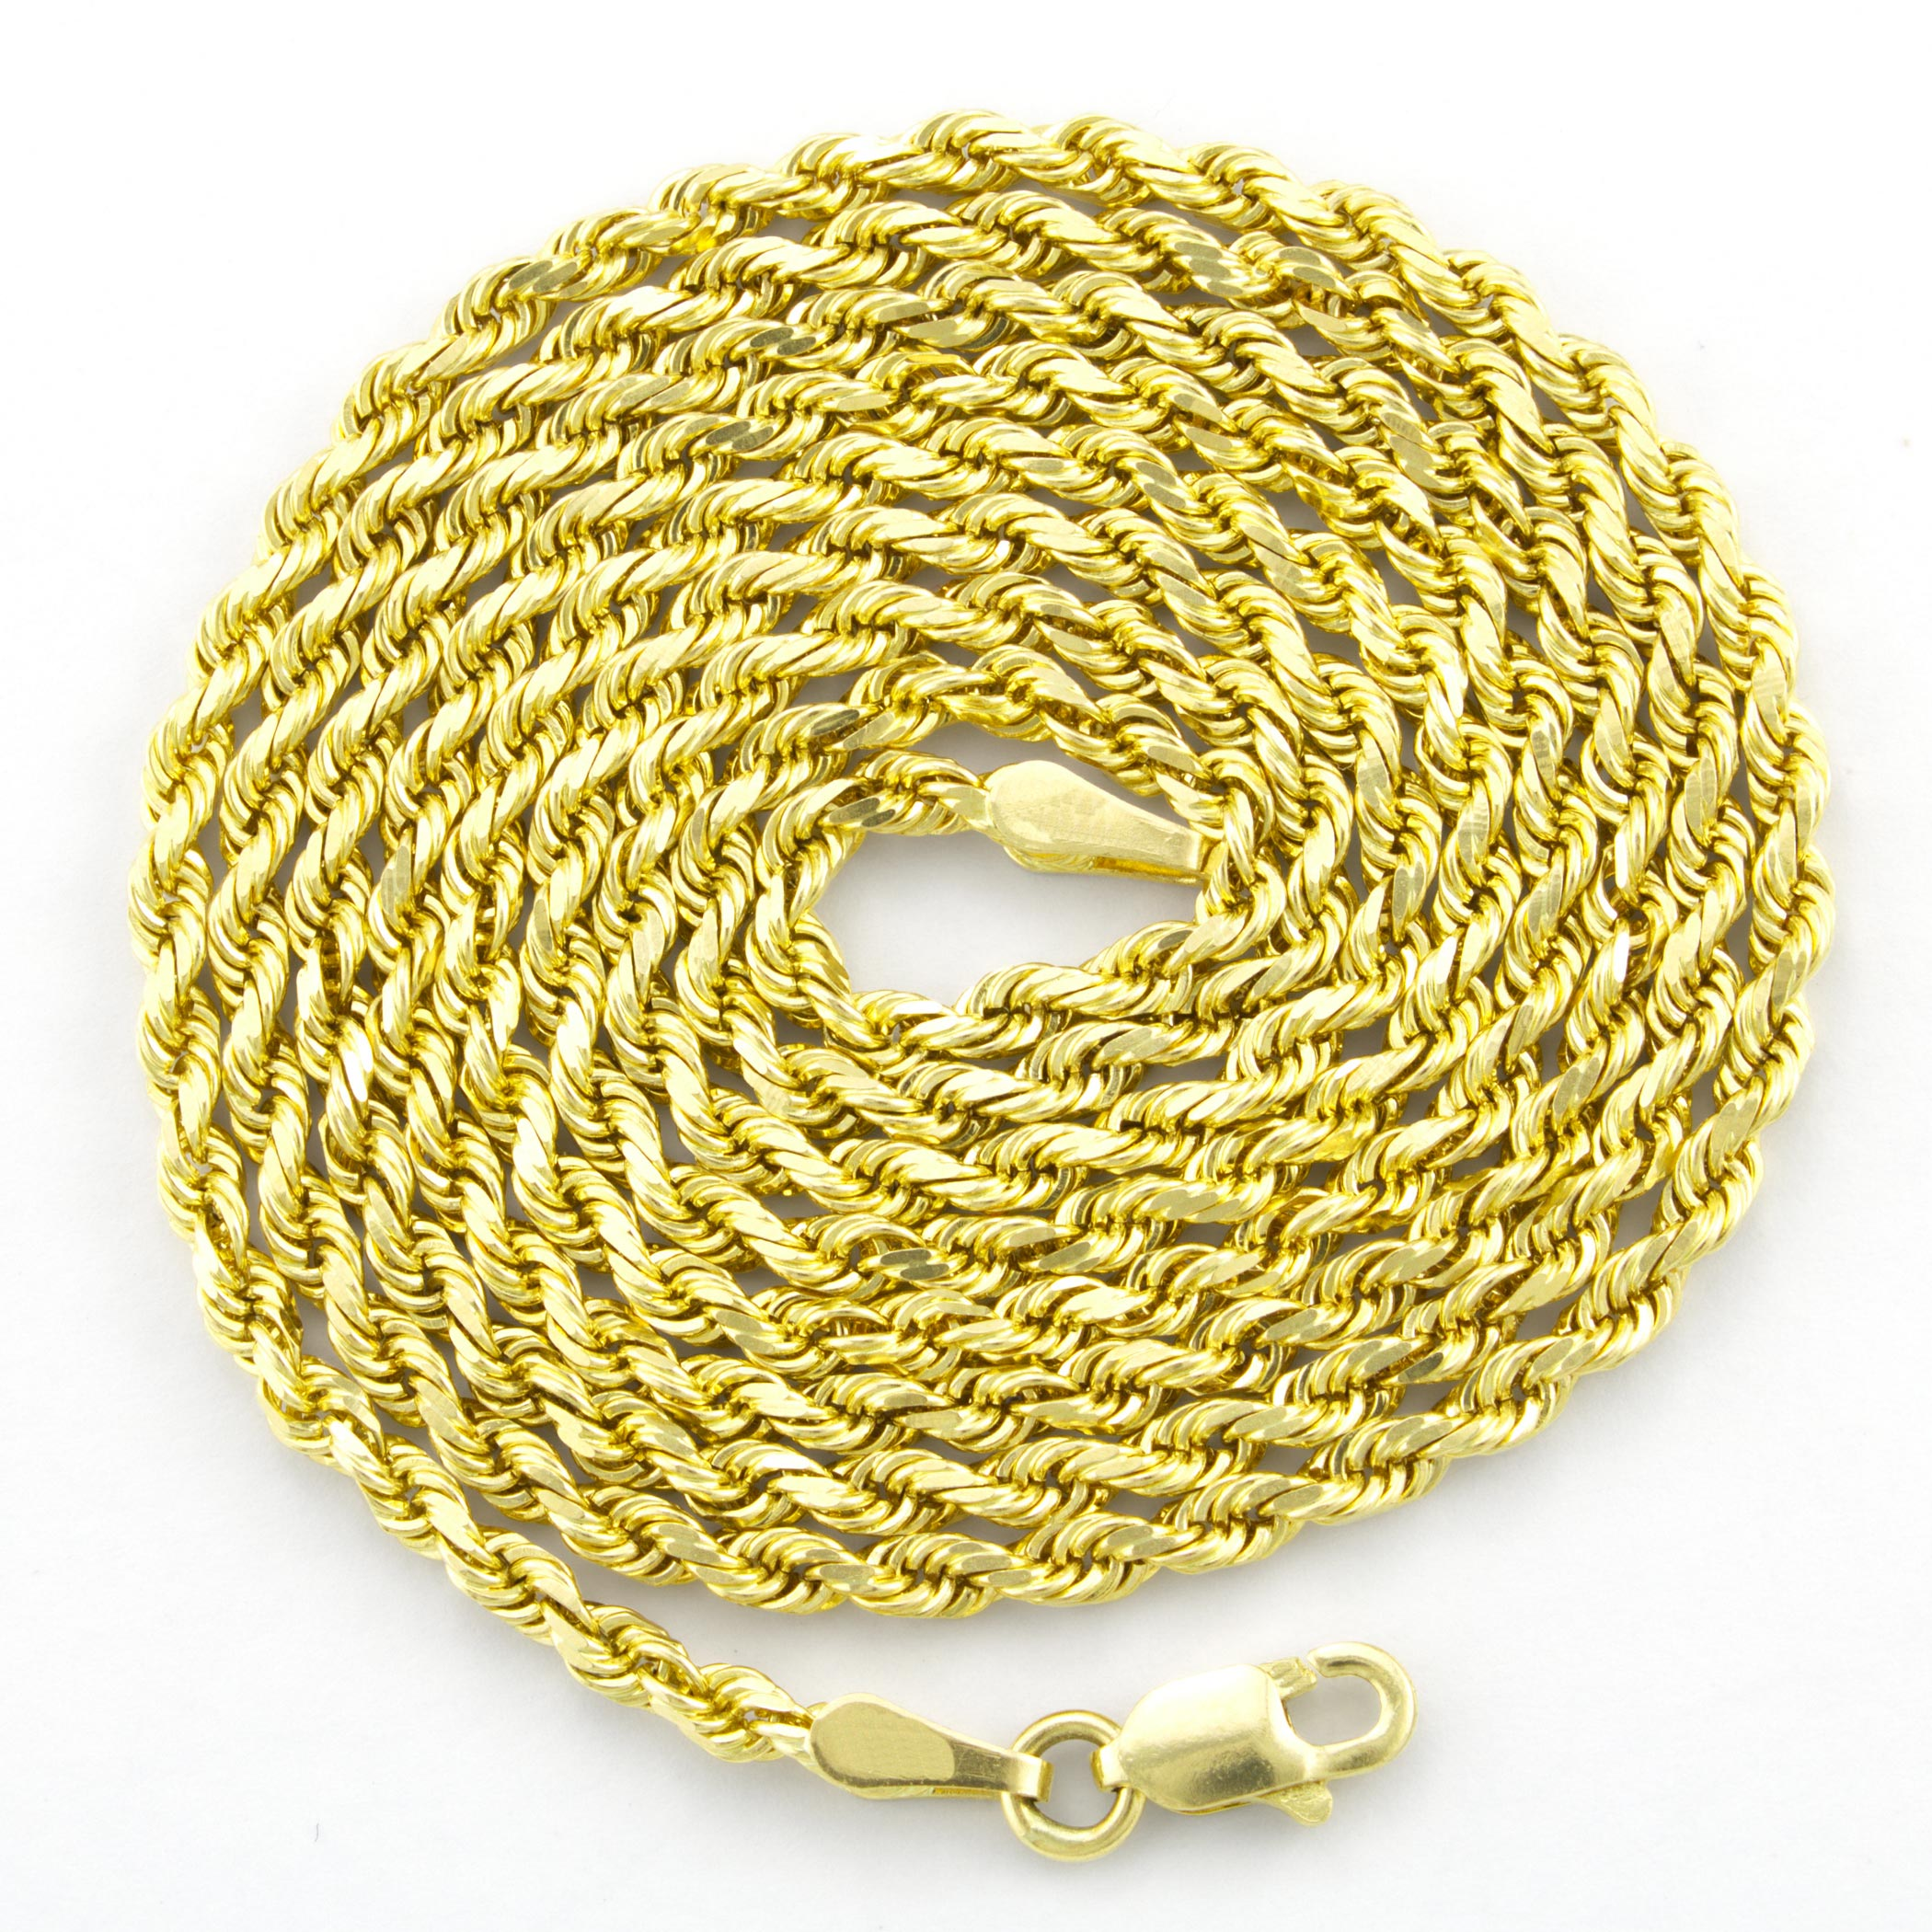 Solid-14K-Yellow-Gold-2-5mm-Mens-Women-Diamond-Cut-Rope-Chain-Necklace-16-034-30-034 thumbnail 18